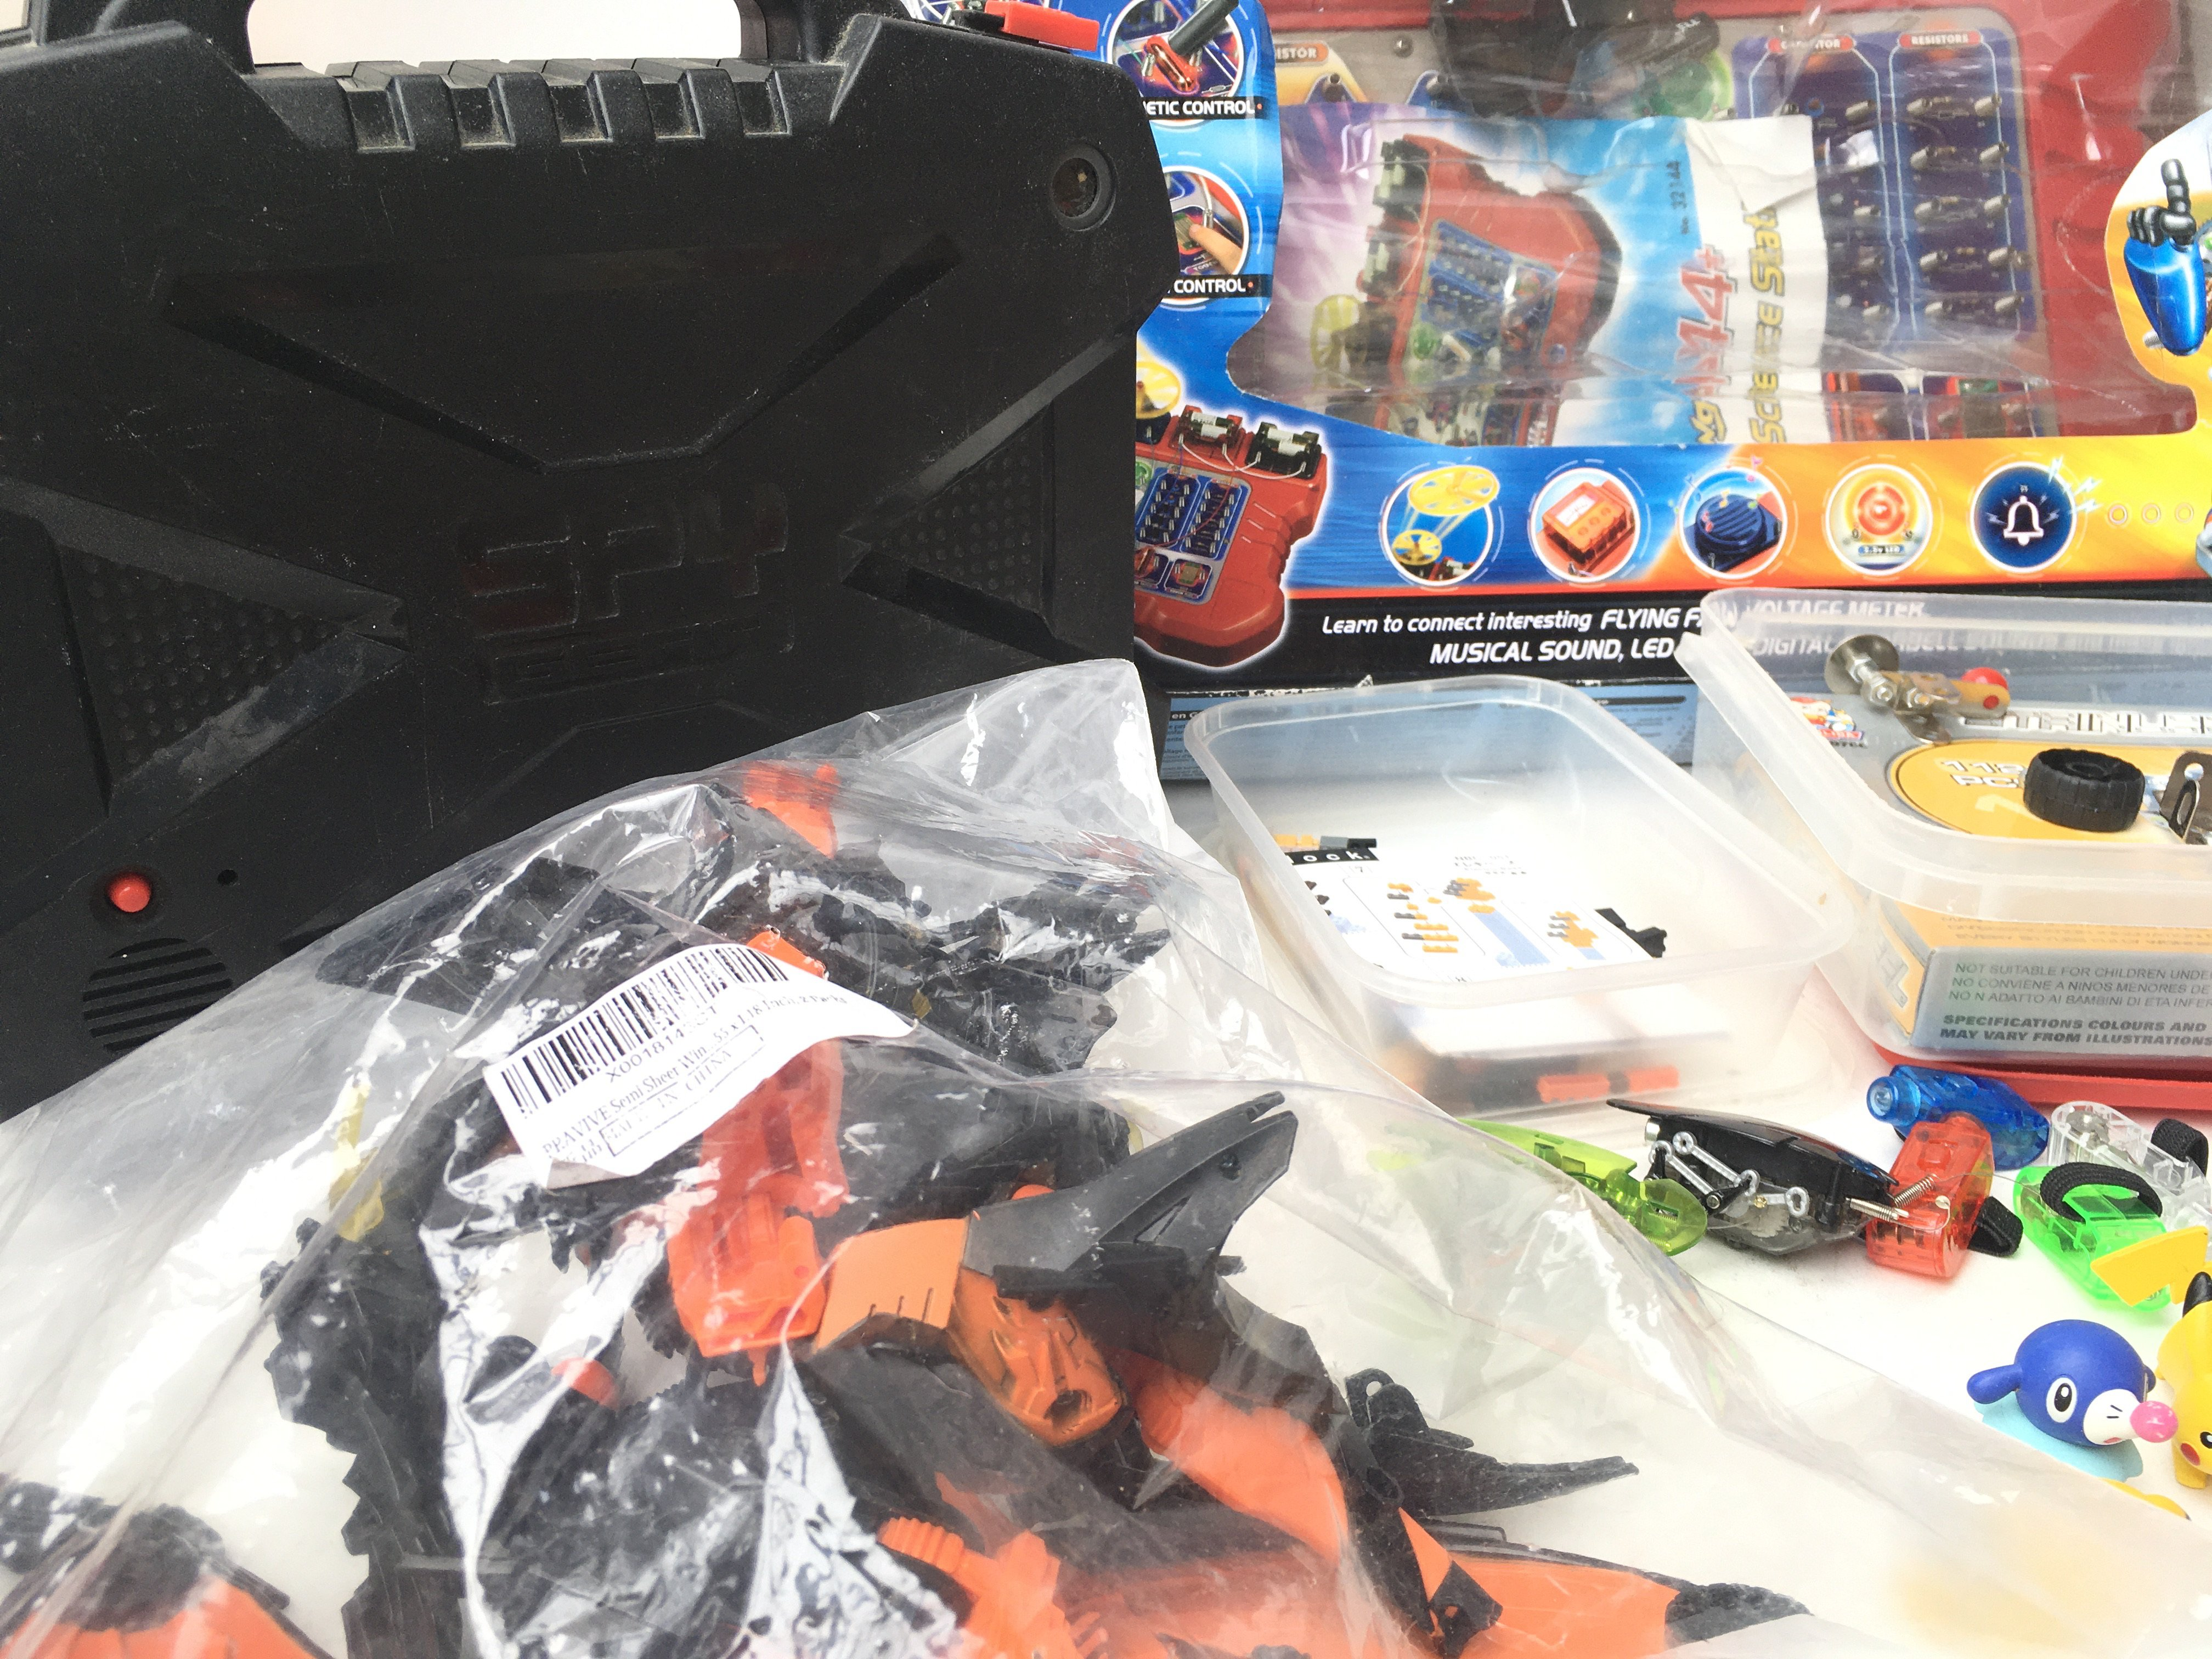 A Collection of Pokemon Figures. A Spy Gear set. A Science Station. 2 X Hex Bugs. Etc. - Image 2 of 2